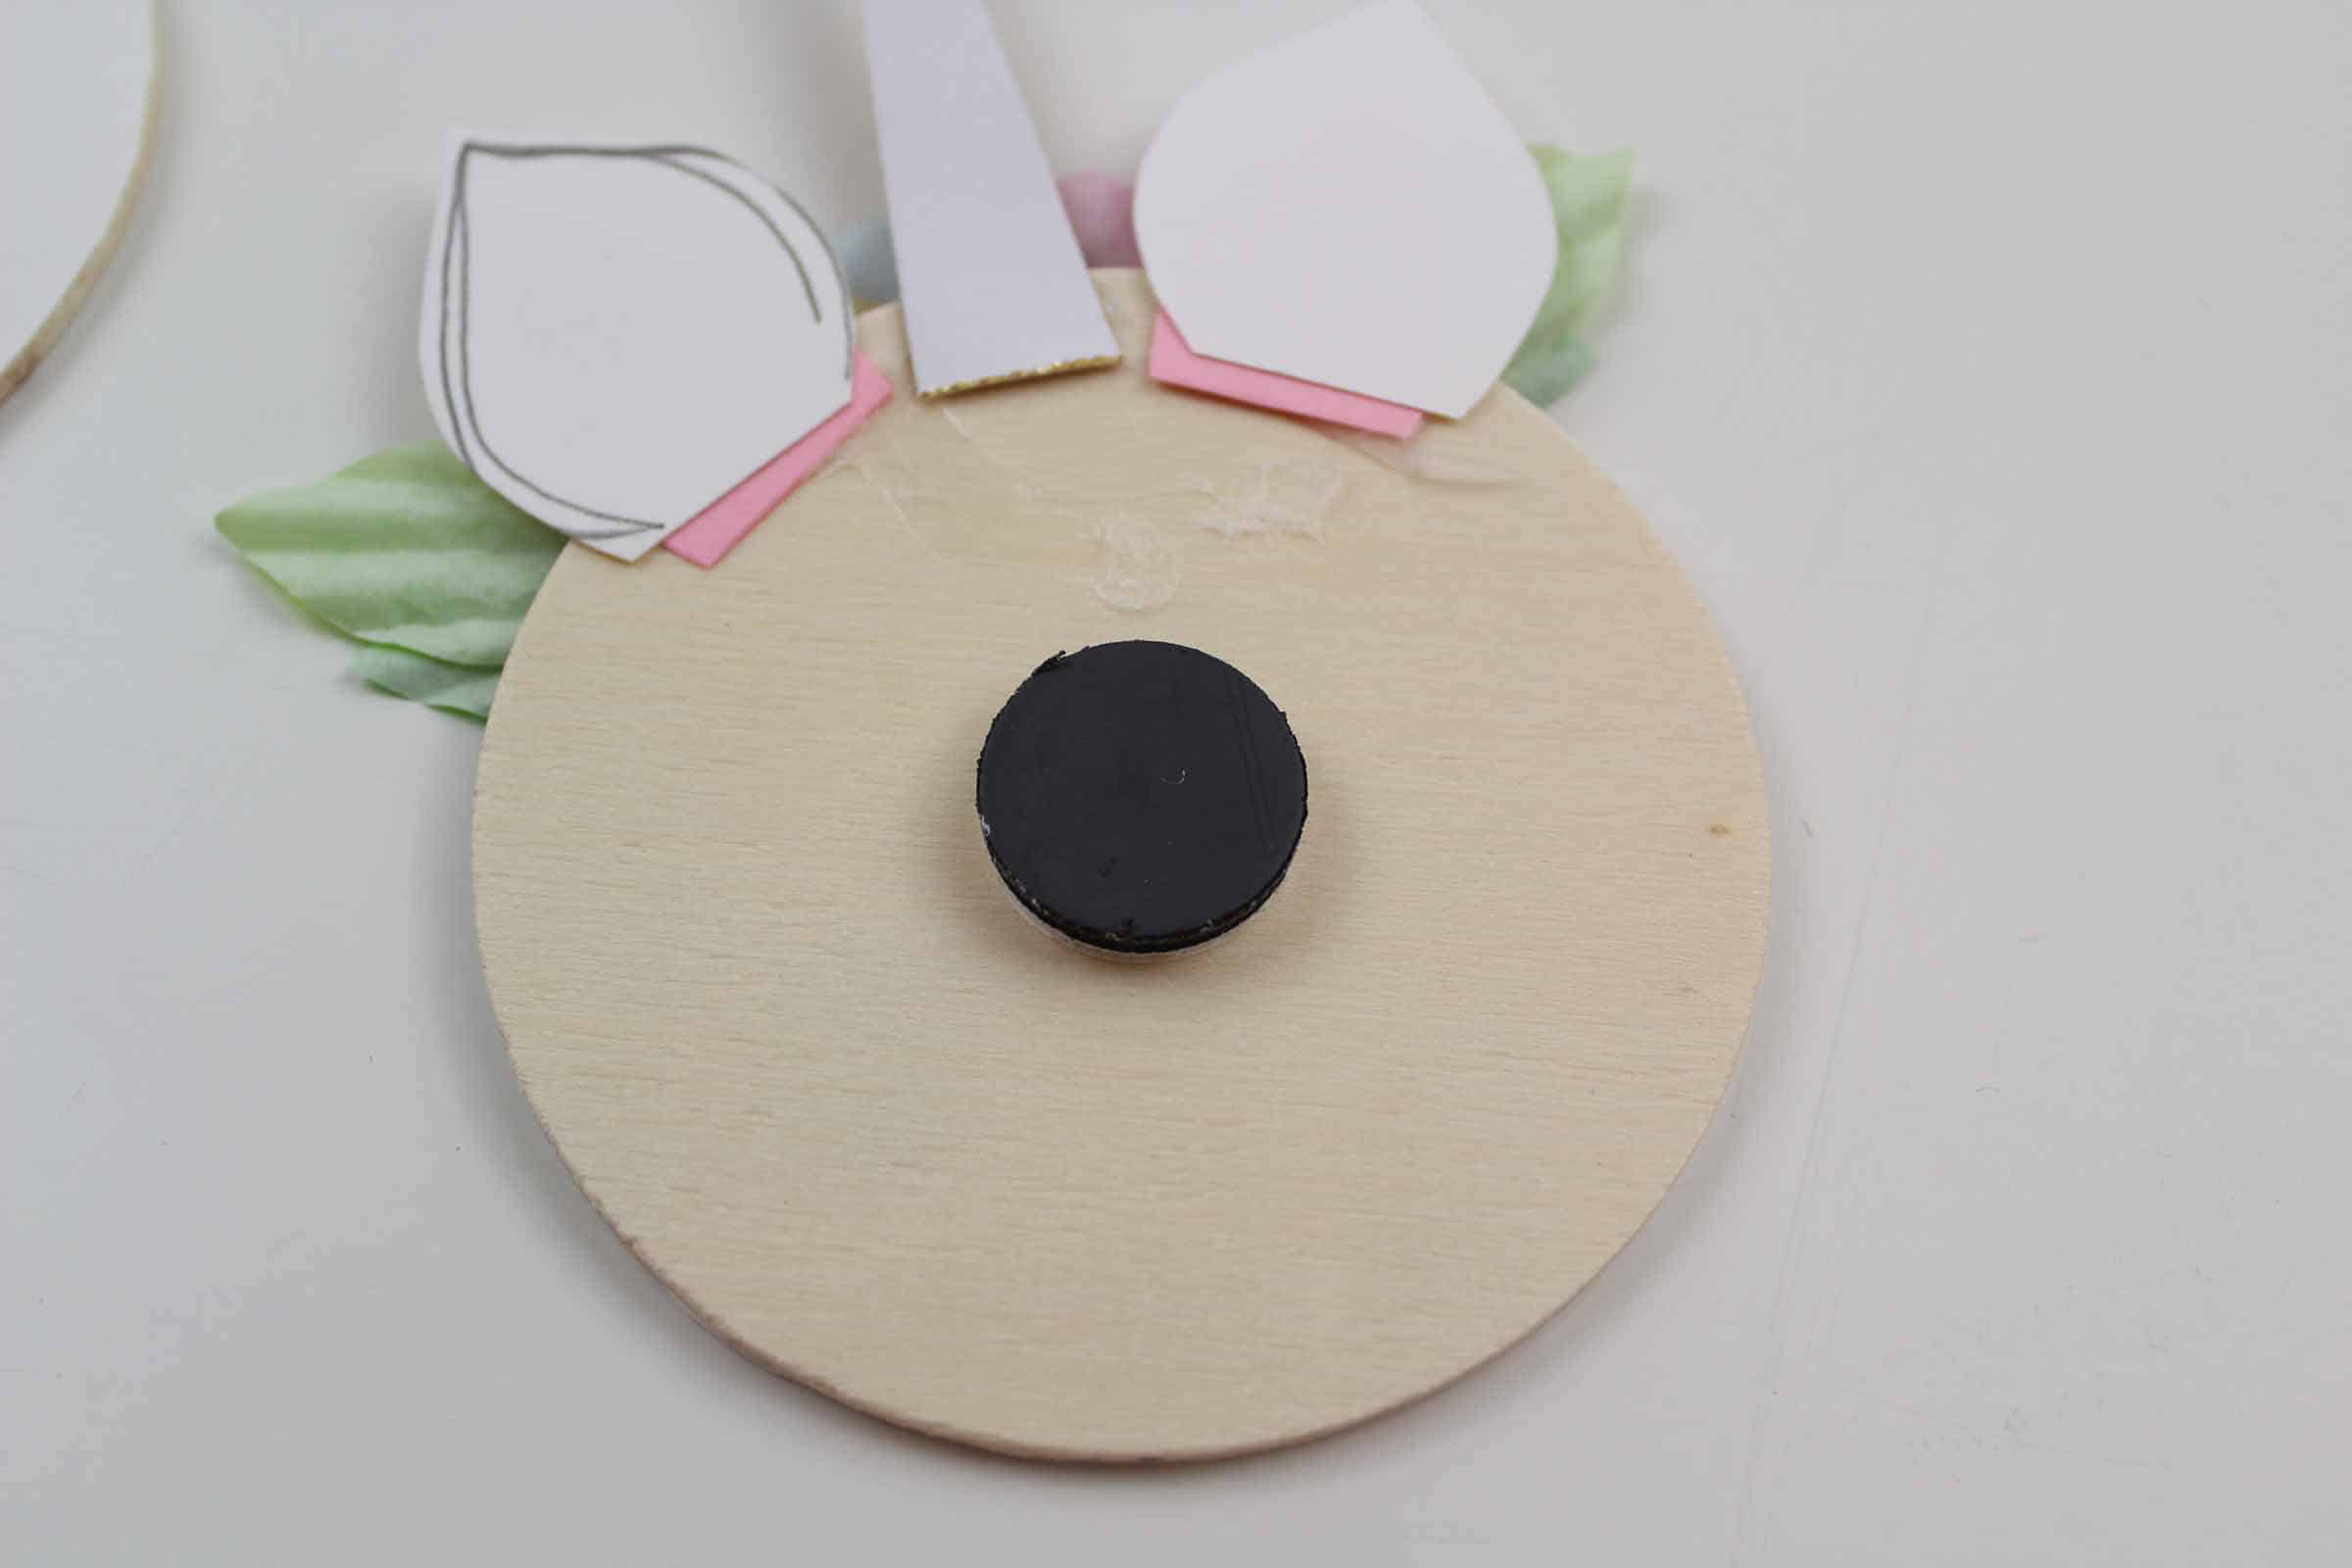 gluing magnet to unicorn craft